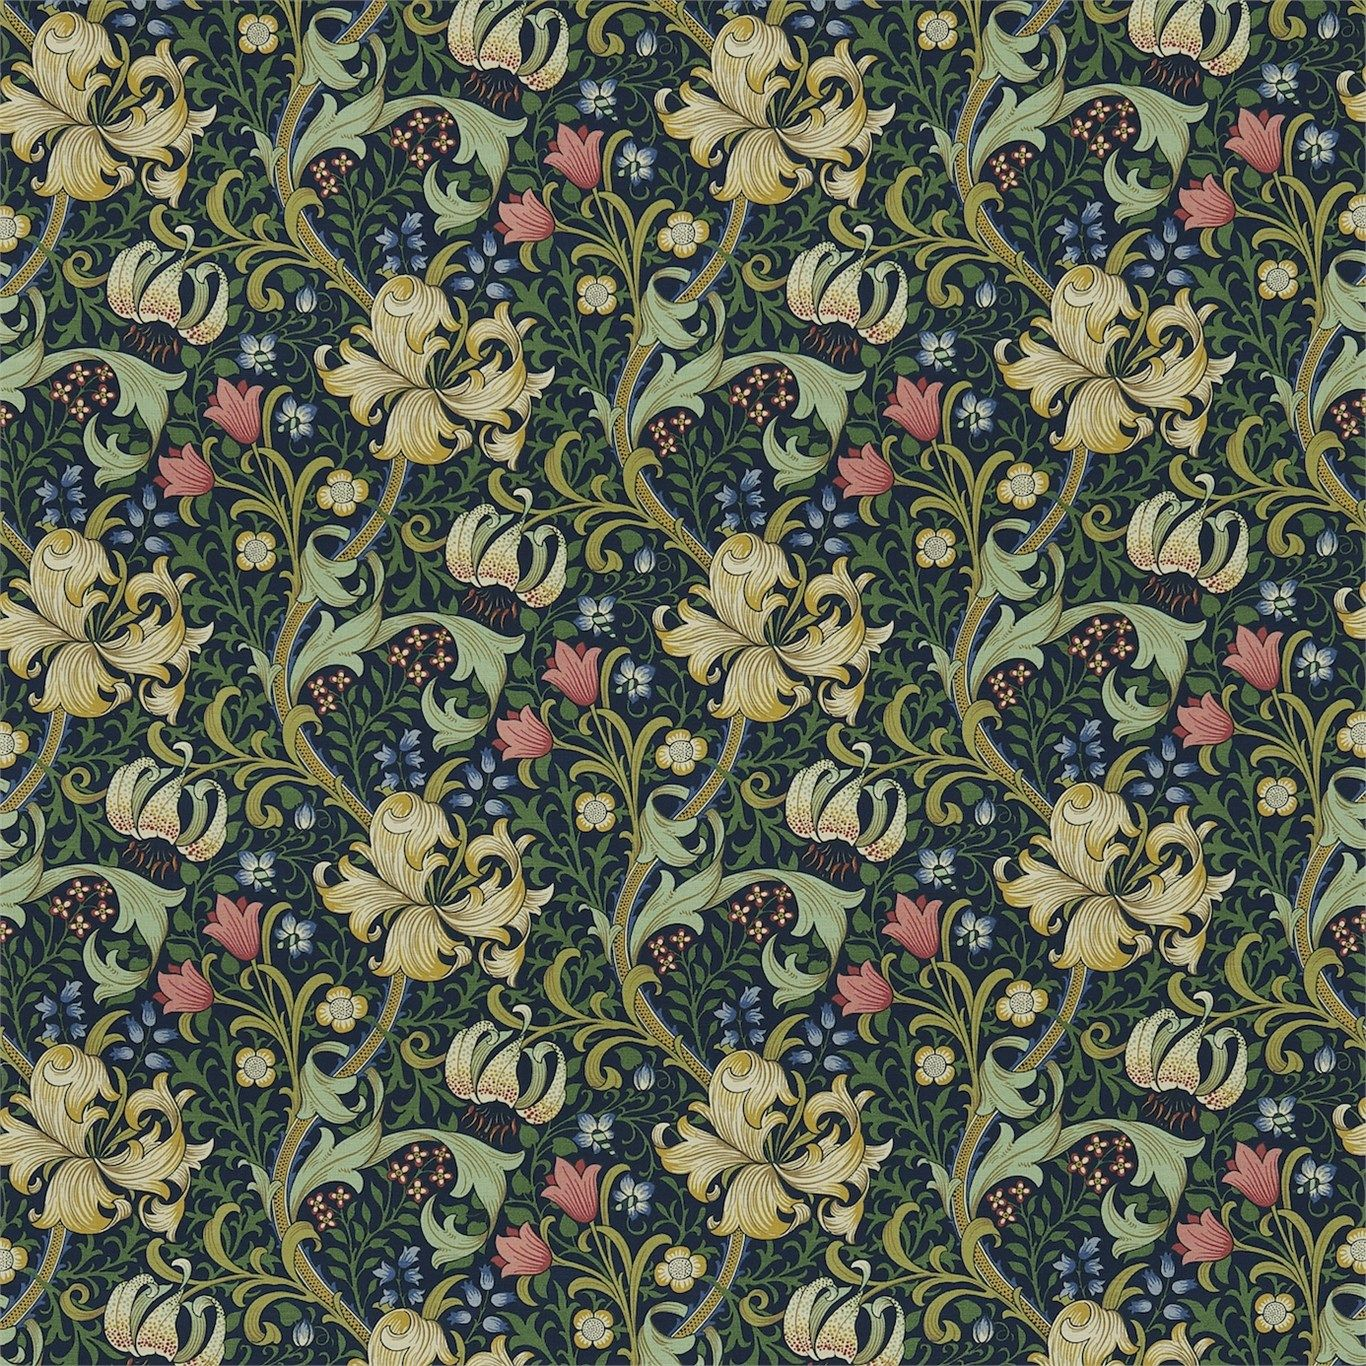 William Morris Rugs Reproductions: Arts And Crafts, Fabrics And